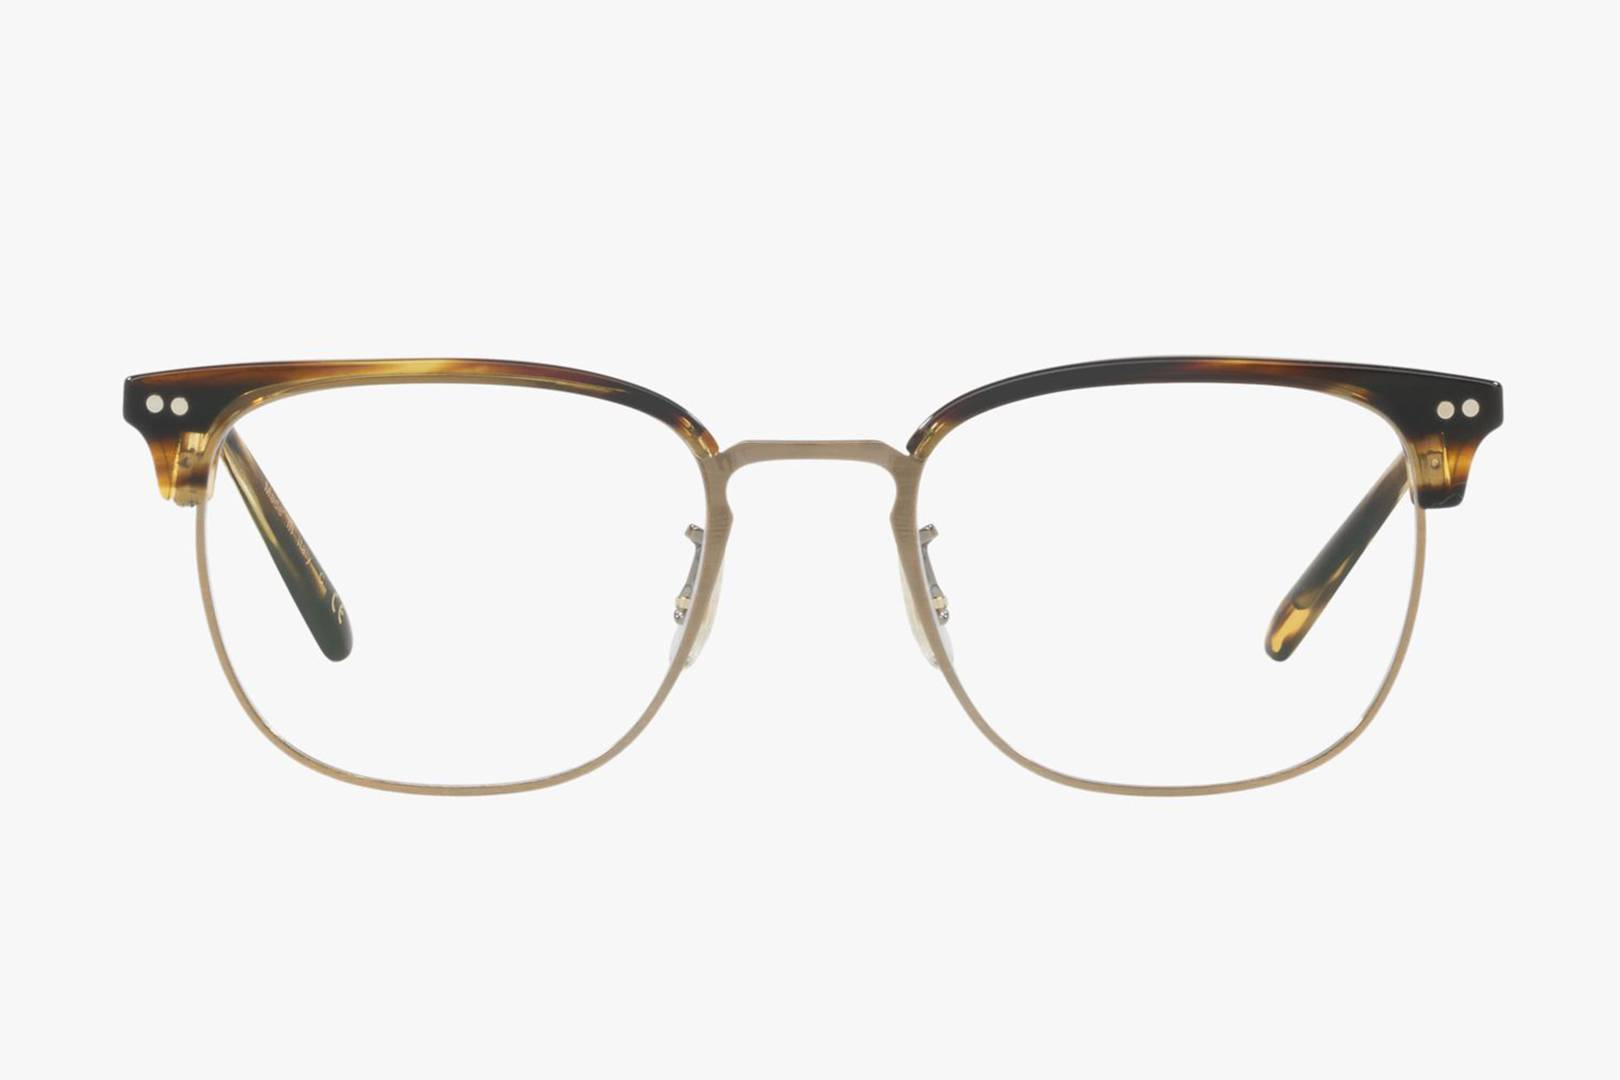 70af99d921 Best men s eyeglasses 2019